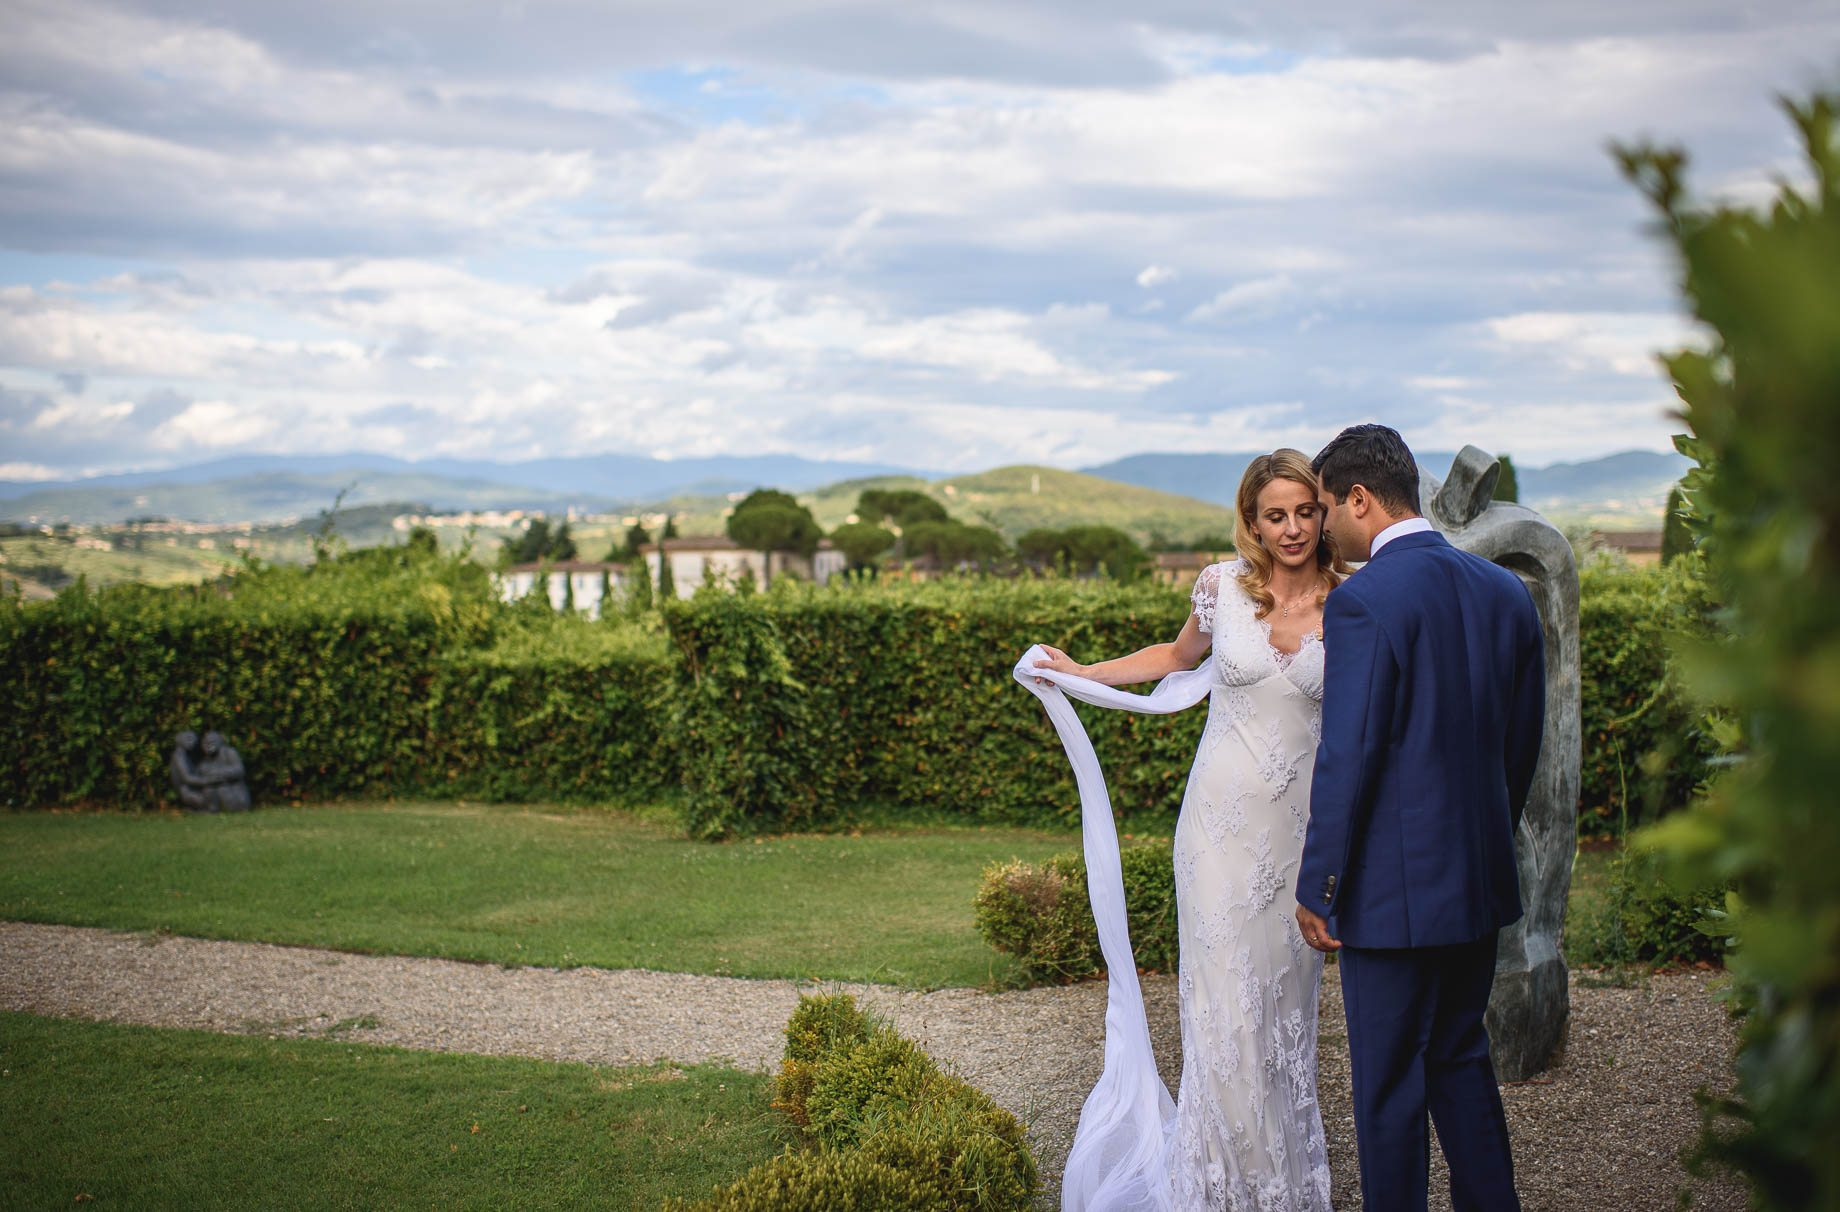 Tuscany wedding photography - Roisin and Moubin - Guy Collier Photography (137 of 251)